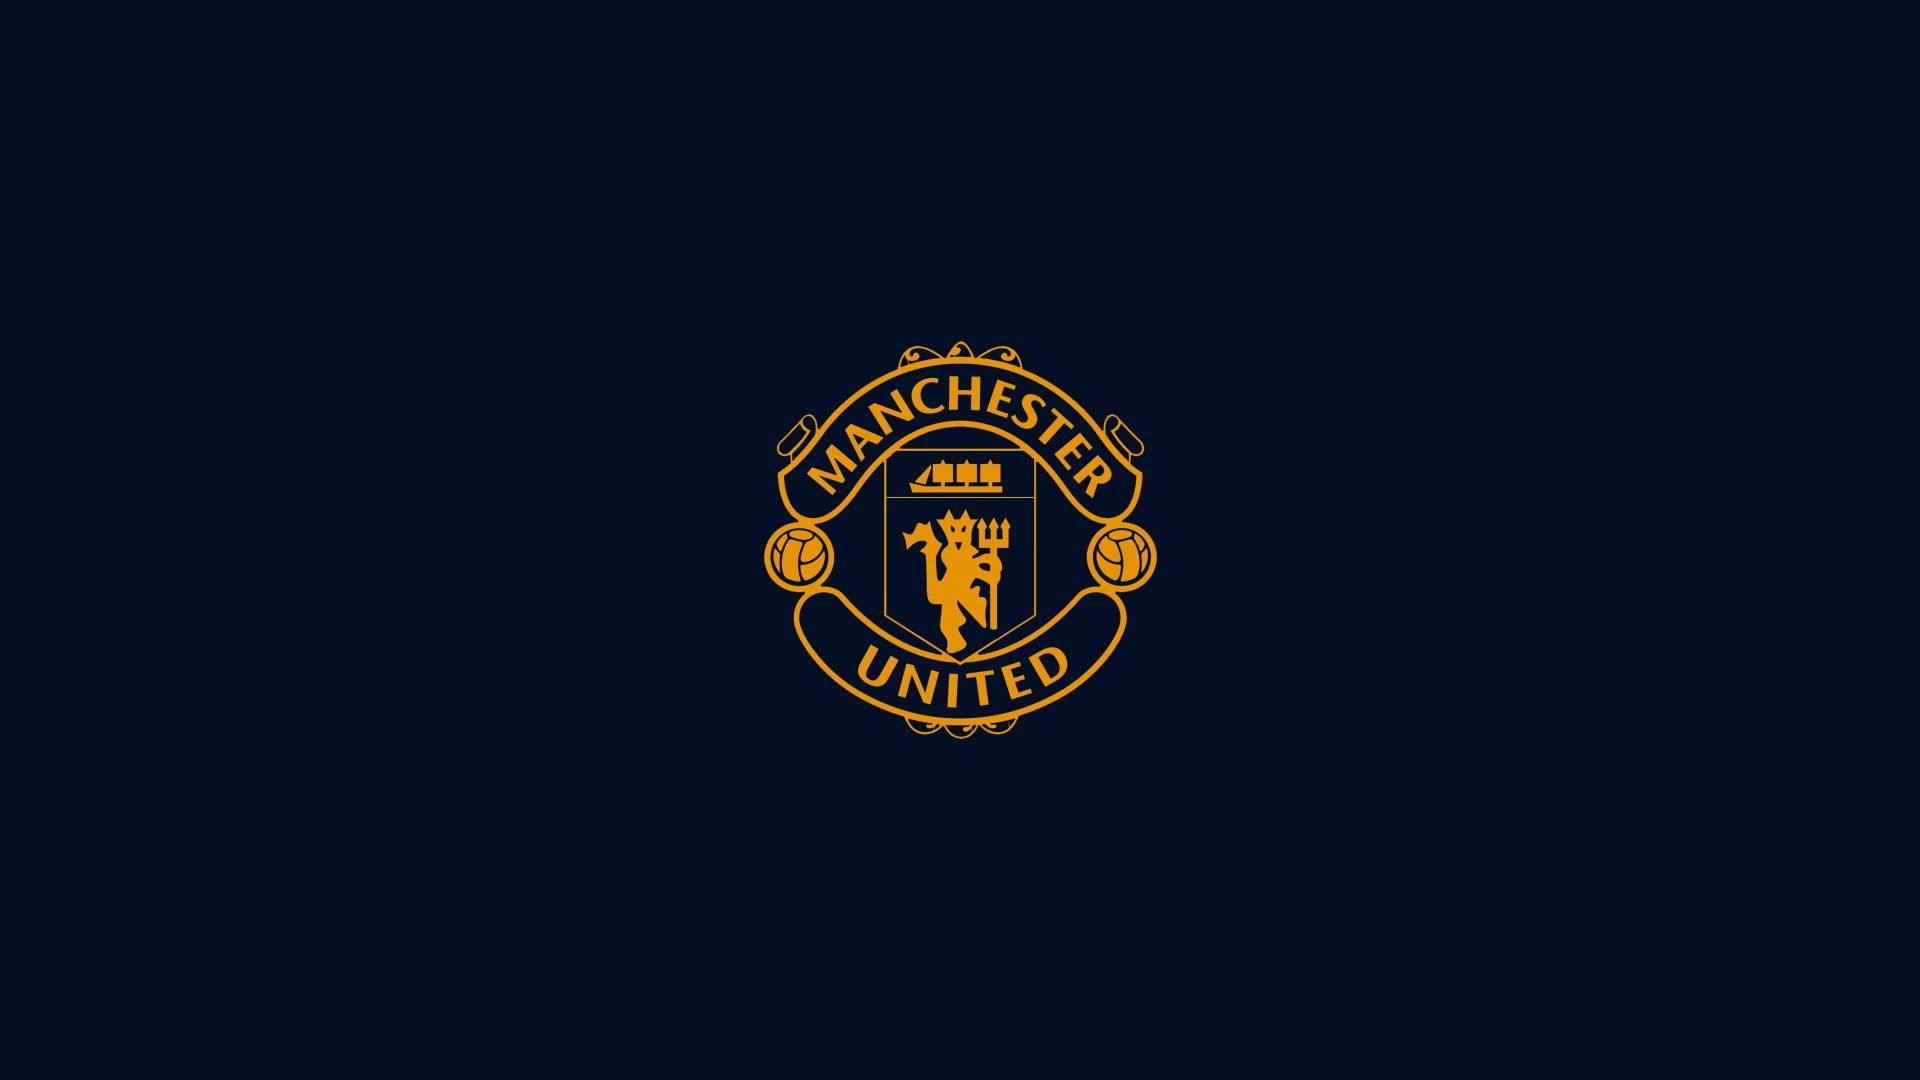 Manchester United Logo Wallpapers In 2020 Manchester United Wallpaper Manchester United Logo Manchester United Wallpapers Iphone